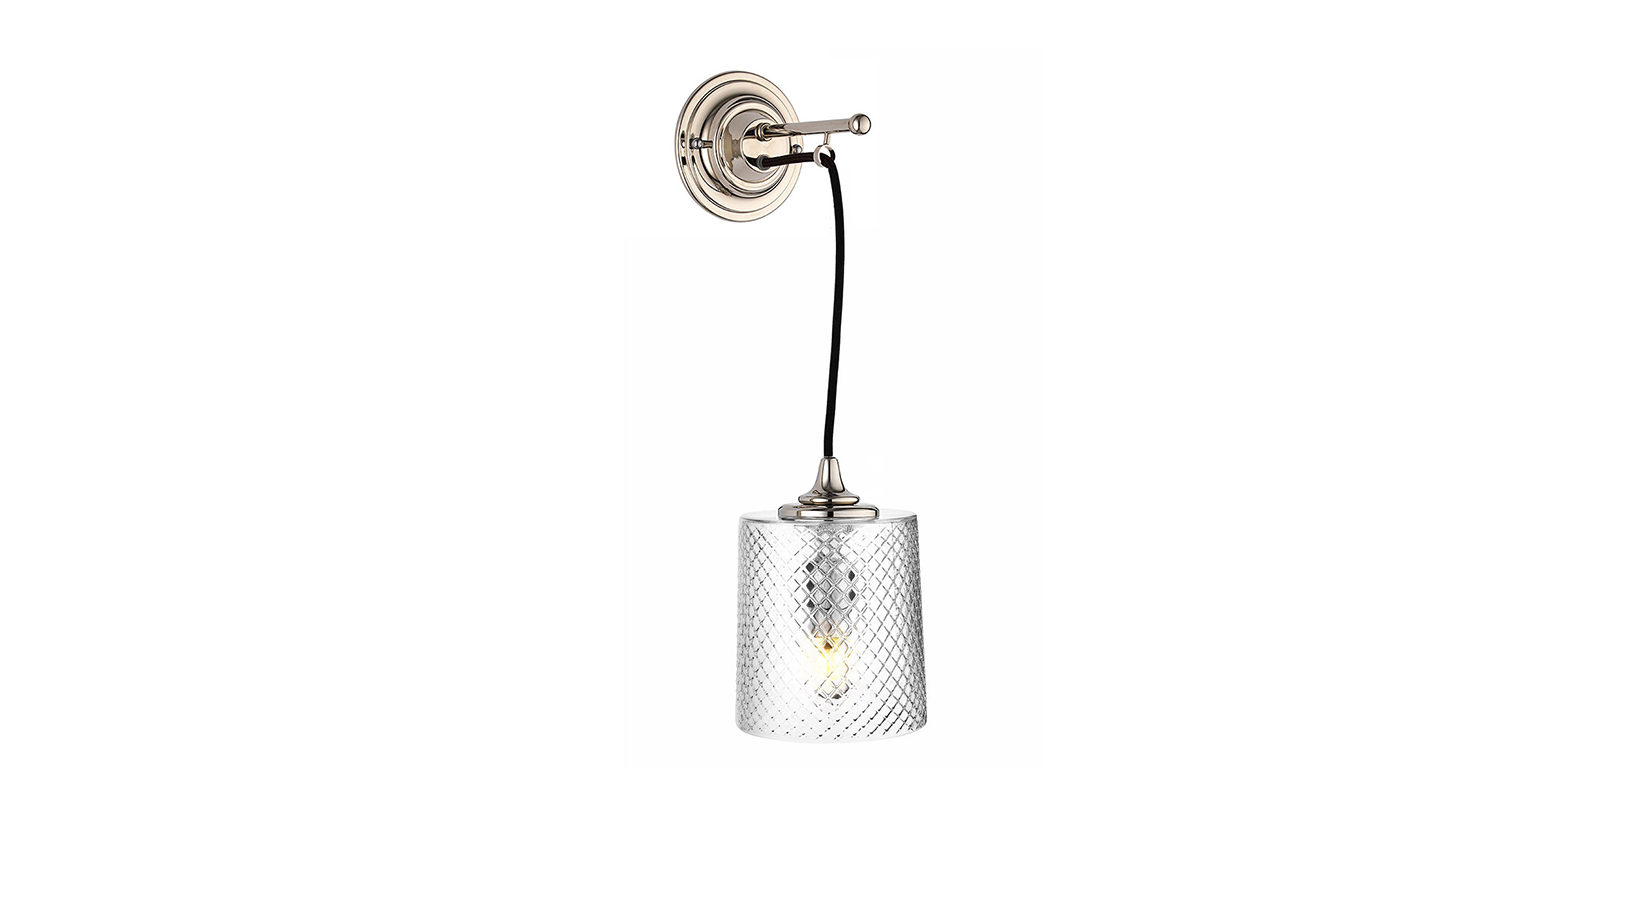 The Single Dalby Light, Cut Glass Shade